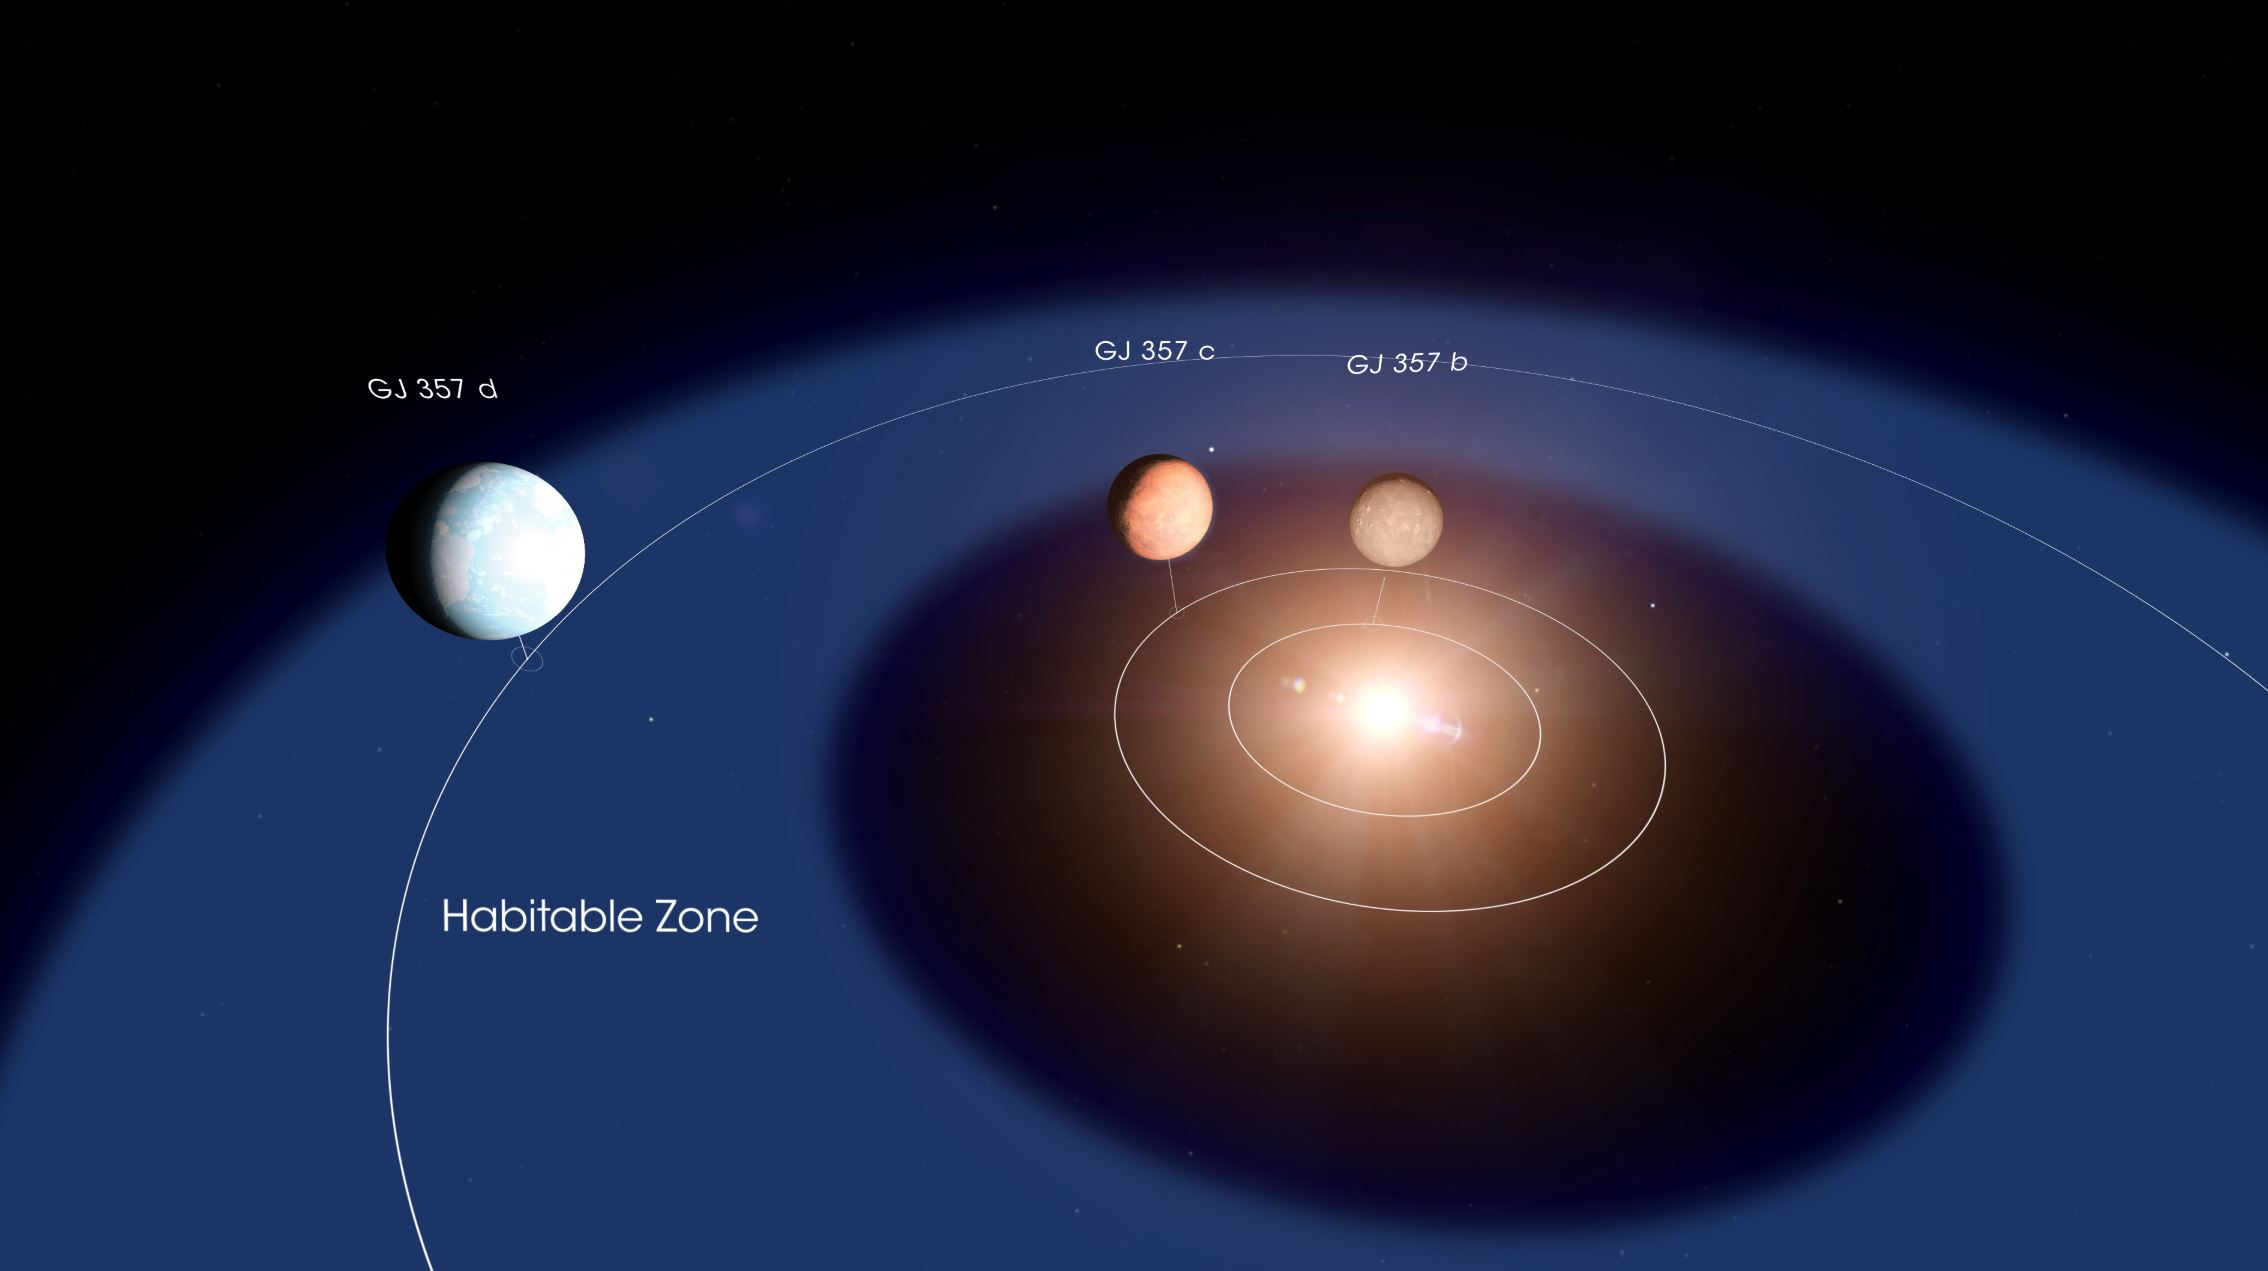 This diagram shows the layout of the GJ 357 system. Planet d orbits within the star's so-called habitable zone, the orbital region where liquid water can exist on a rocky planet's surface. If it has a dense atmosphere, which will take future studies to determine, GJ 357 d could be warm enough to permit the presence of liquid water.- Image Credits: NASA's Goddard Space Flight Center/Chris Smith